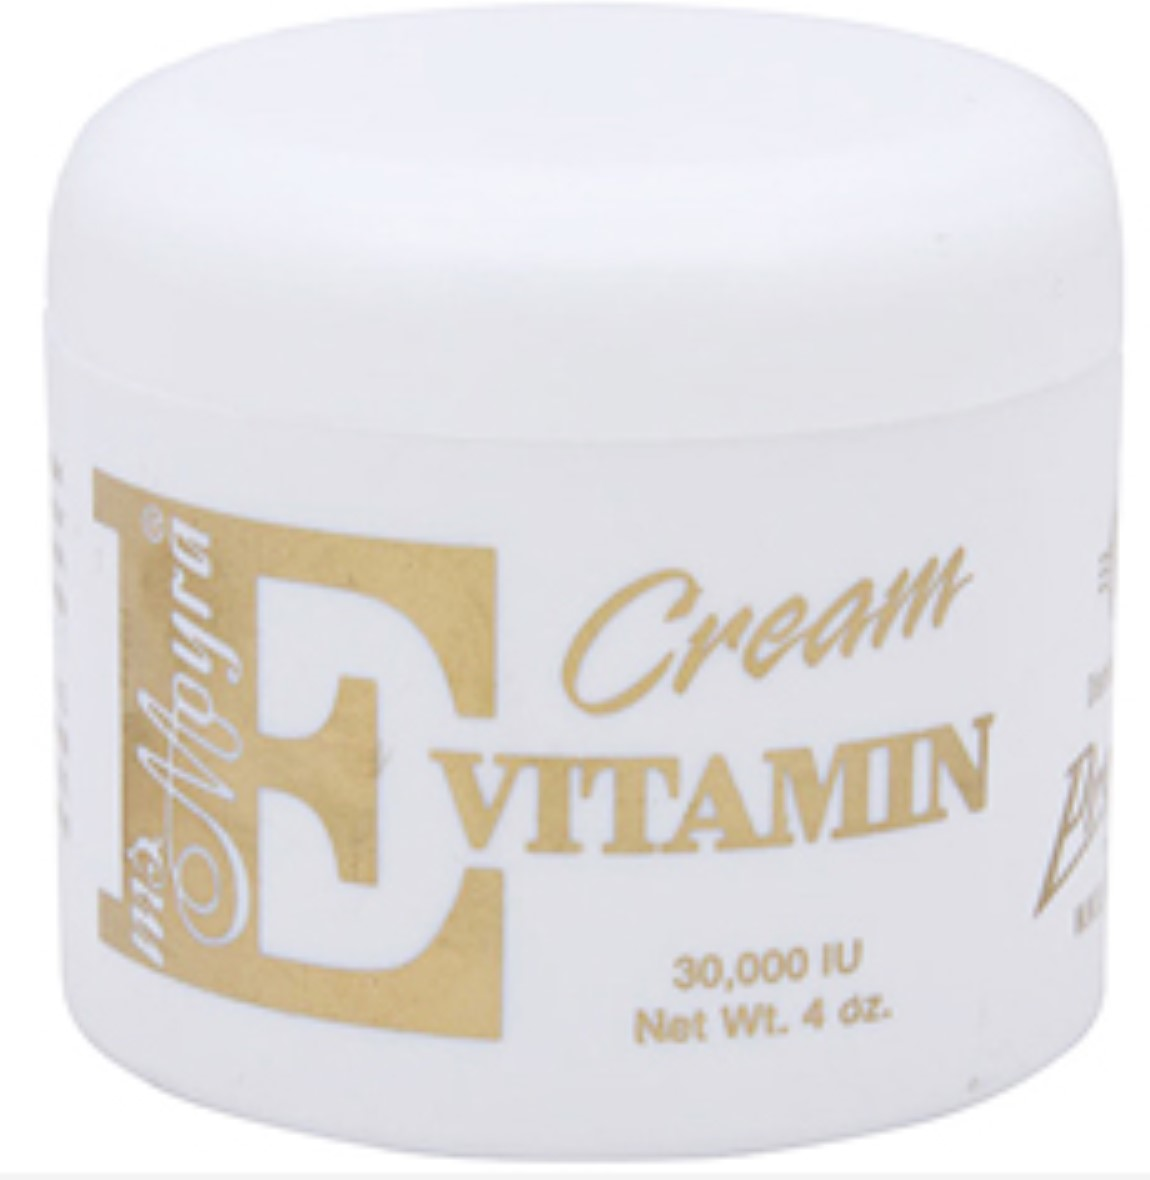 Ms. Moyra Vitamin E Cream 4 oz